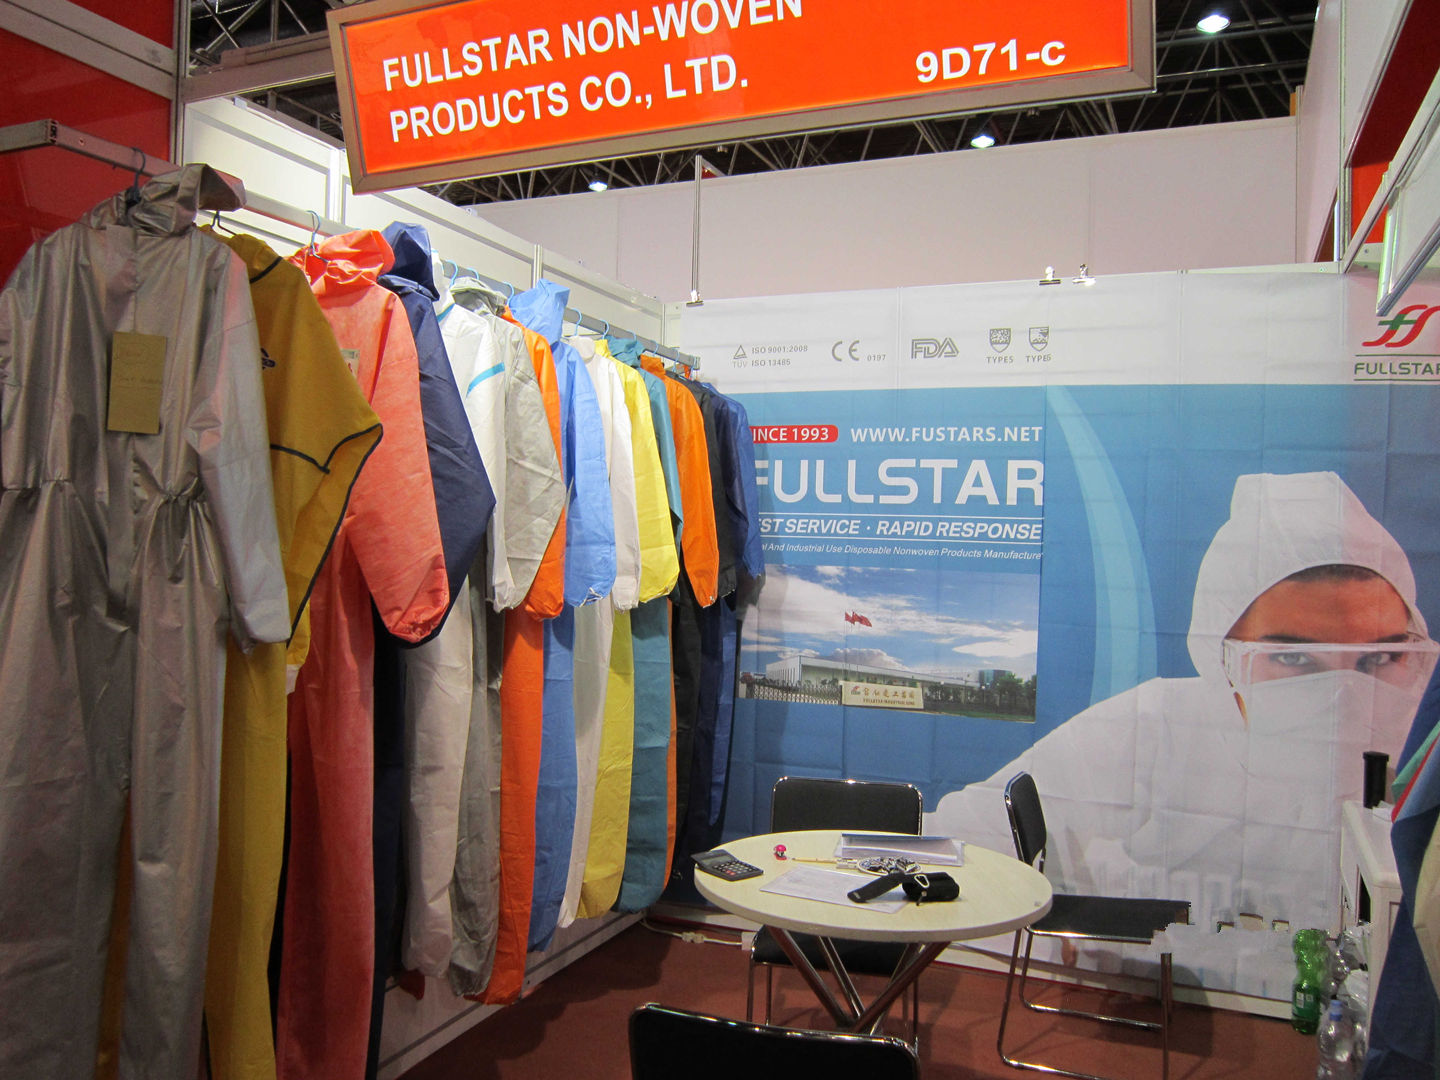 2013 Fullstar in Action